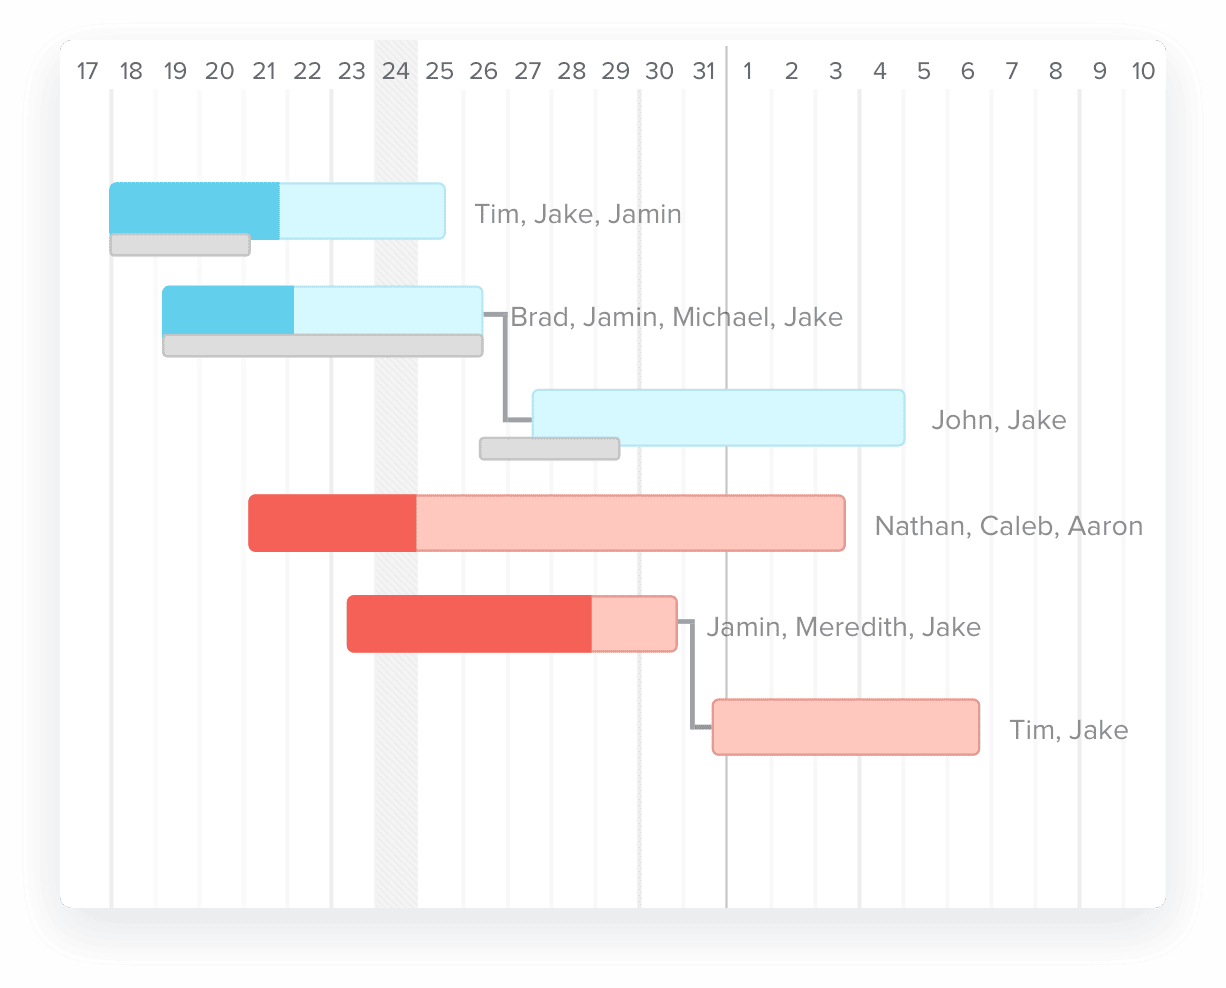 Gantt chart with dependencies to show how project tasks are connected